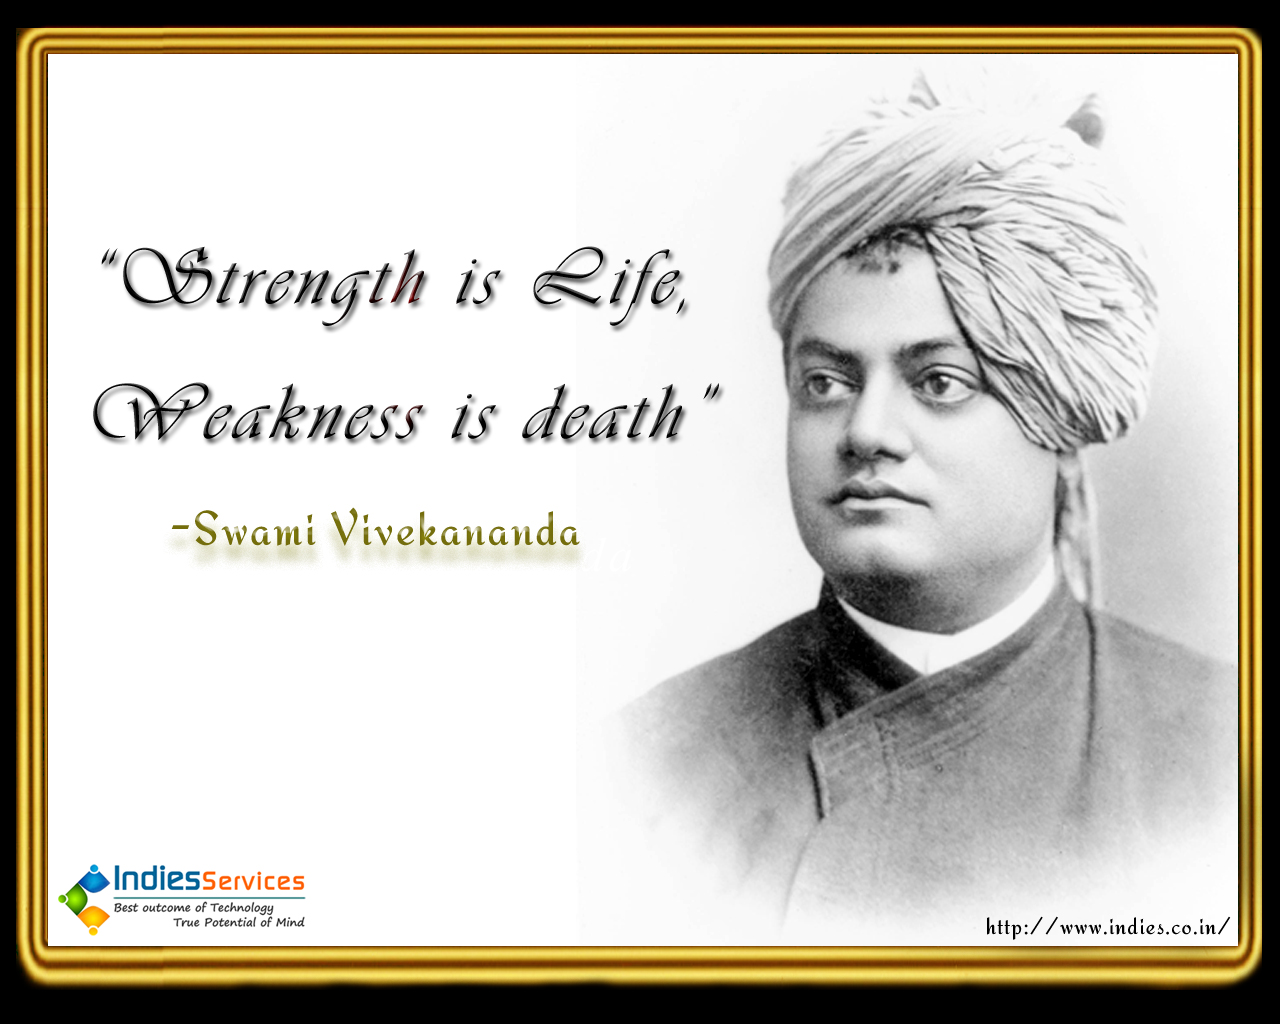 Swami Vivekananda Wallpapers Visit Our Collection Of - Swami Vivekananda Quotes Strength Is Life - HD Wallpaper